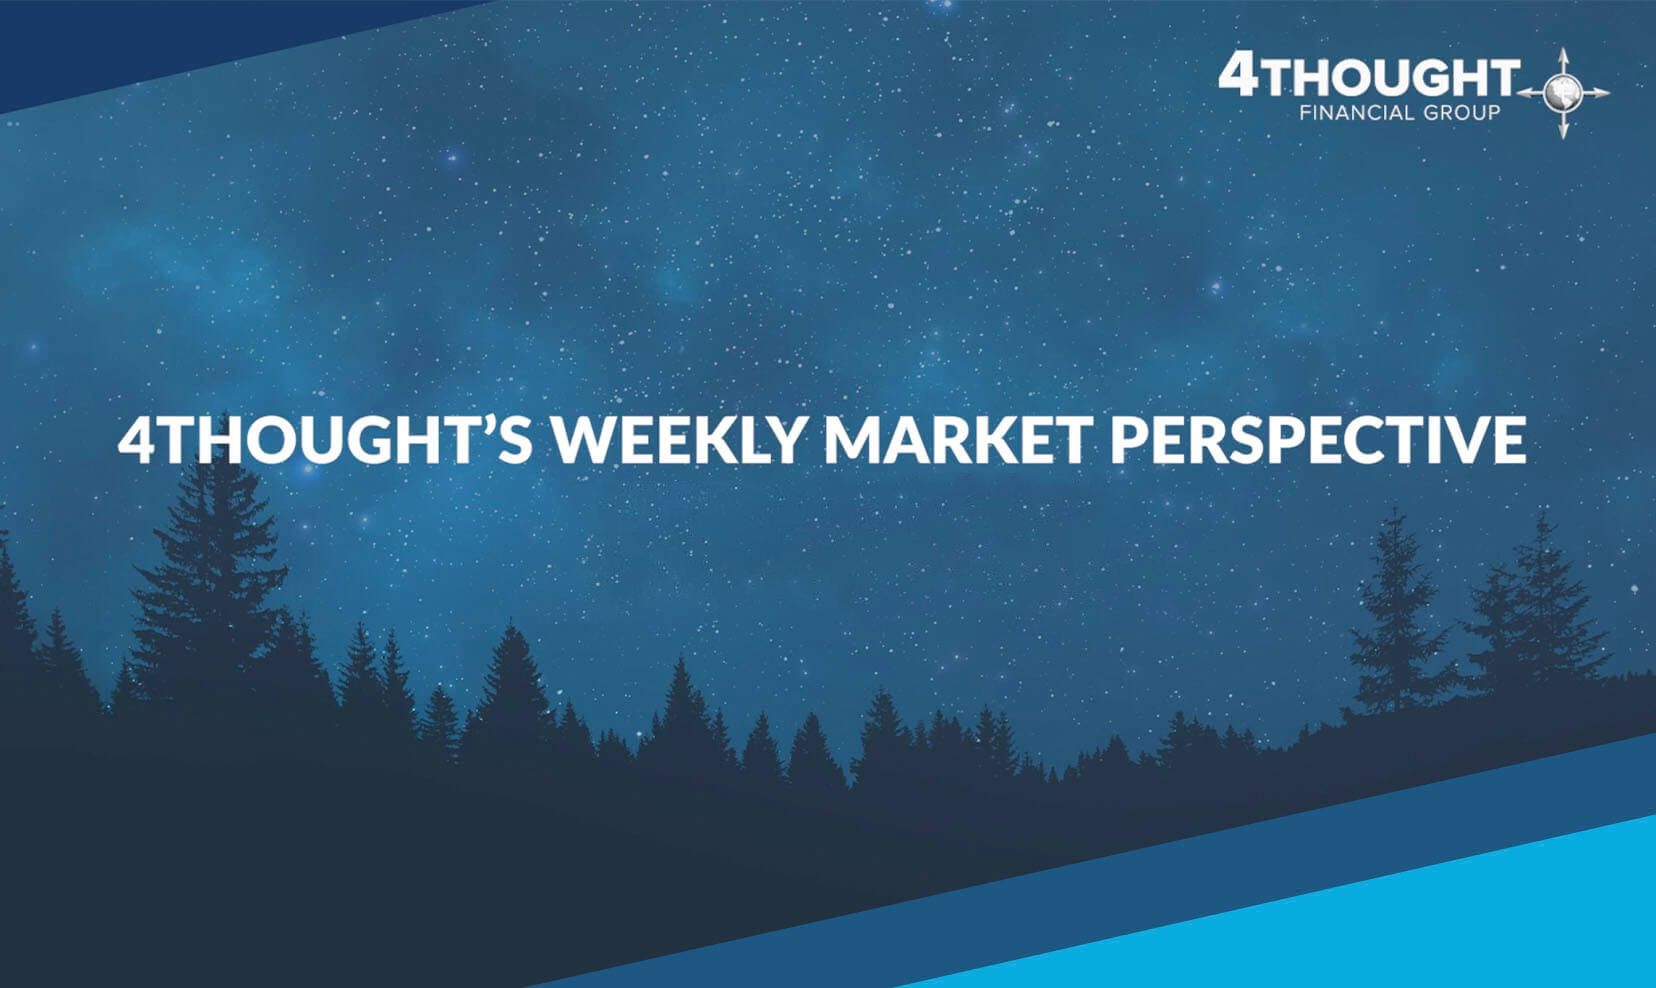 4Thought's Weekly Market Perspective: 8/4/2020